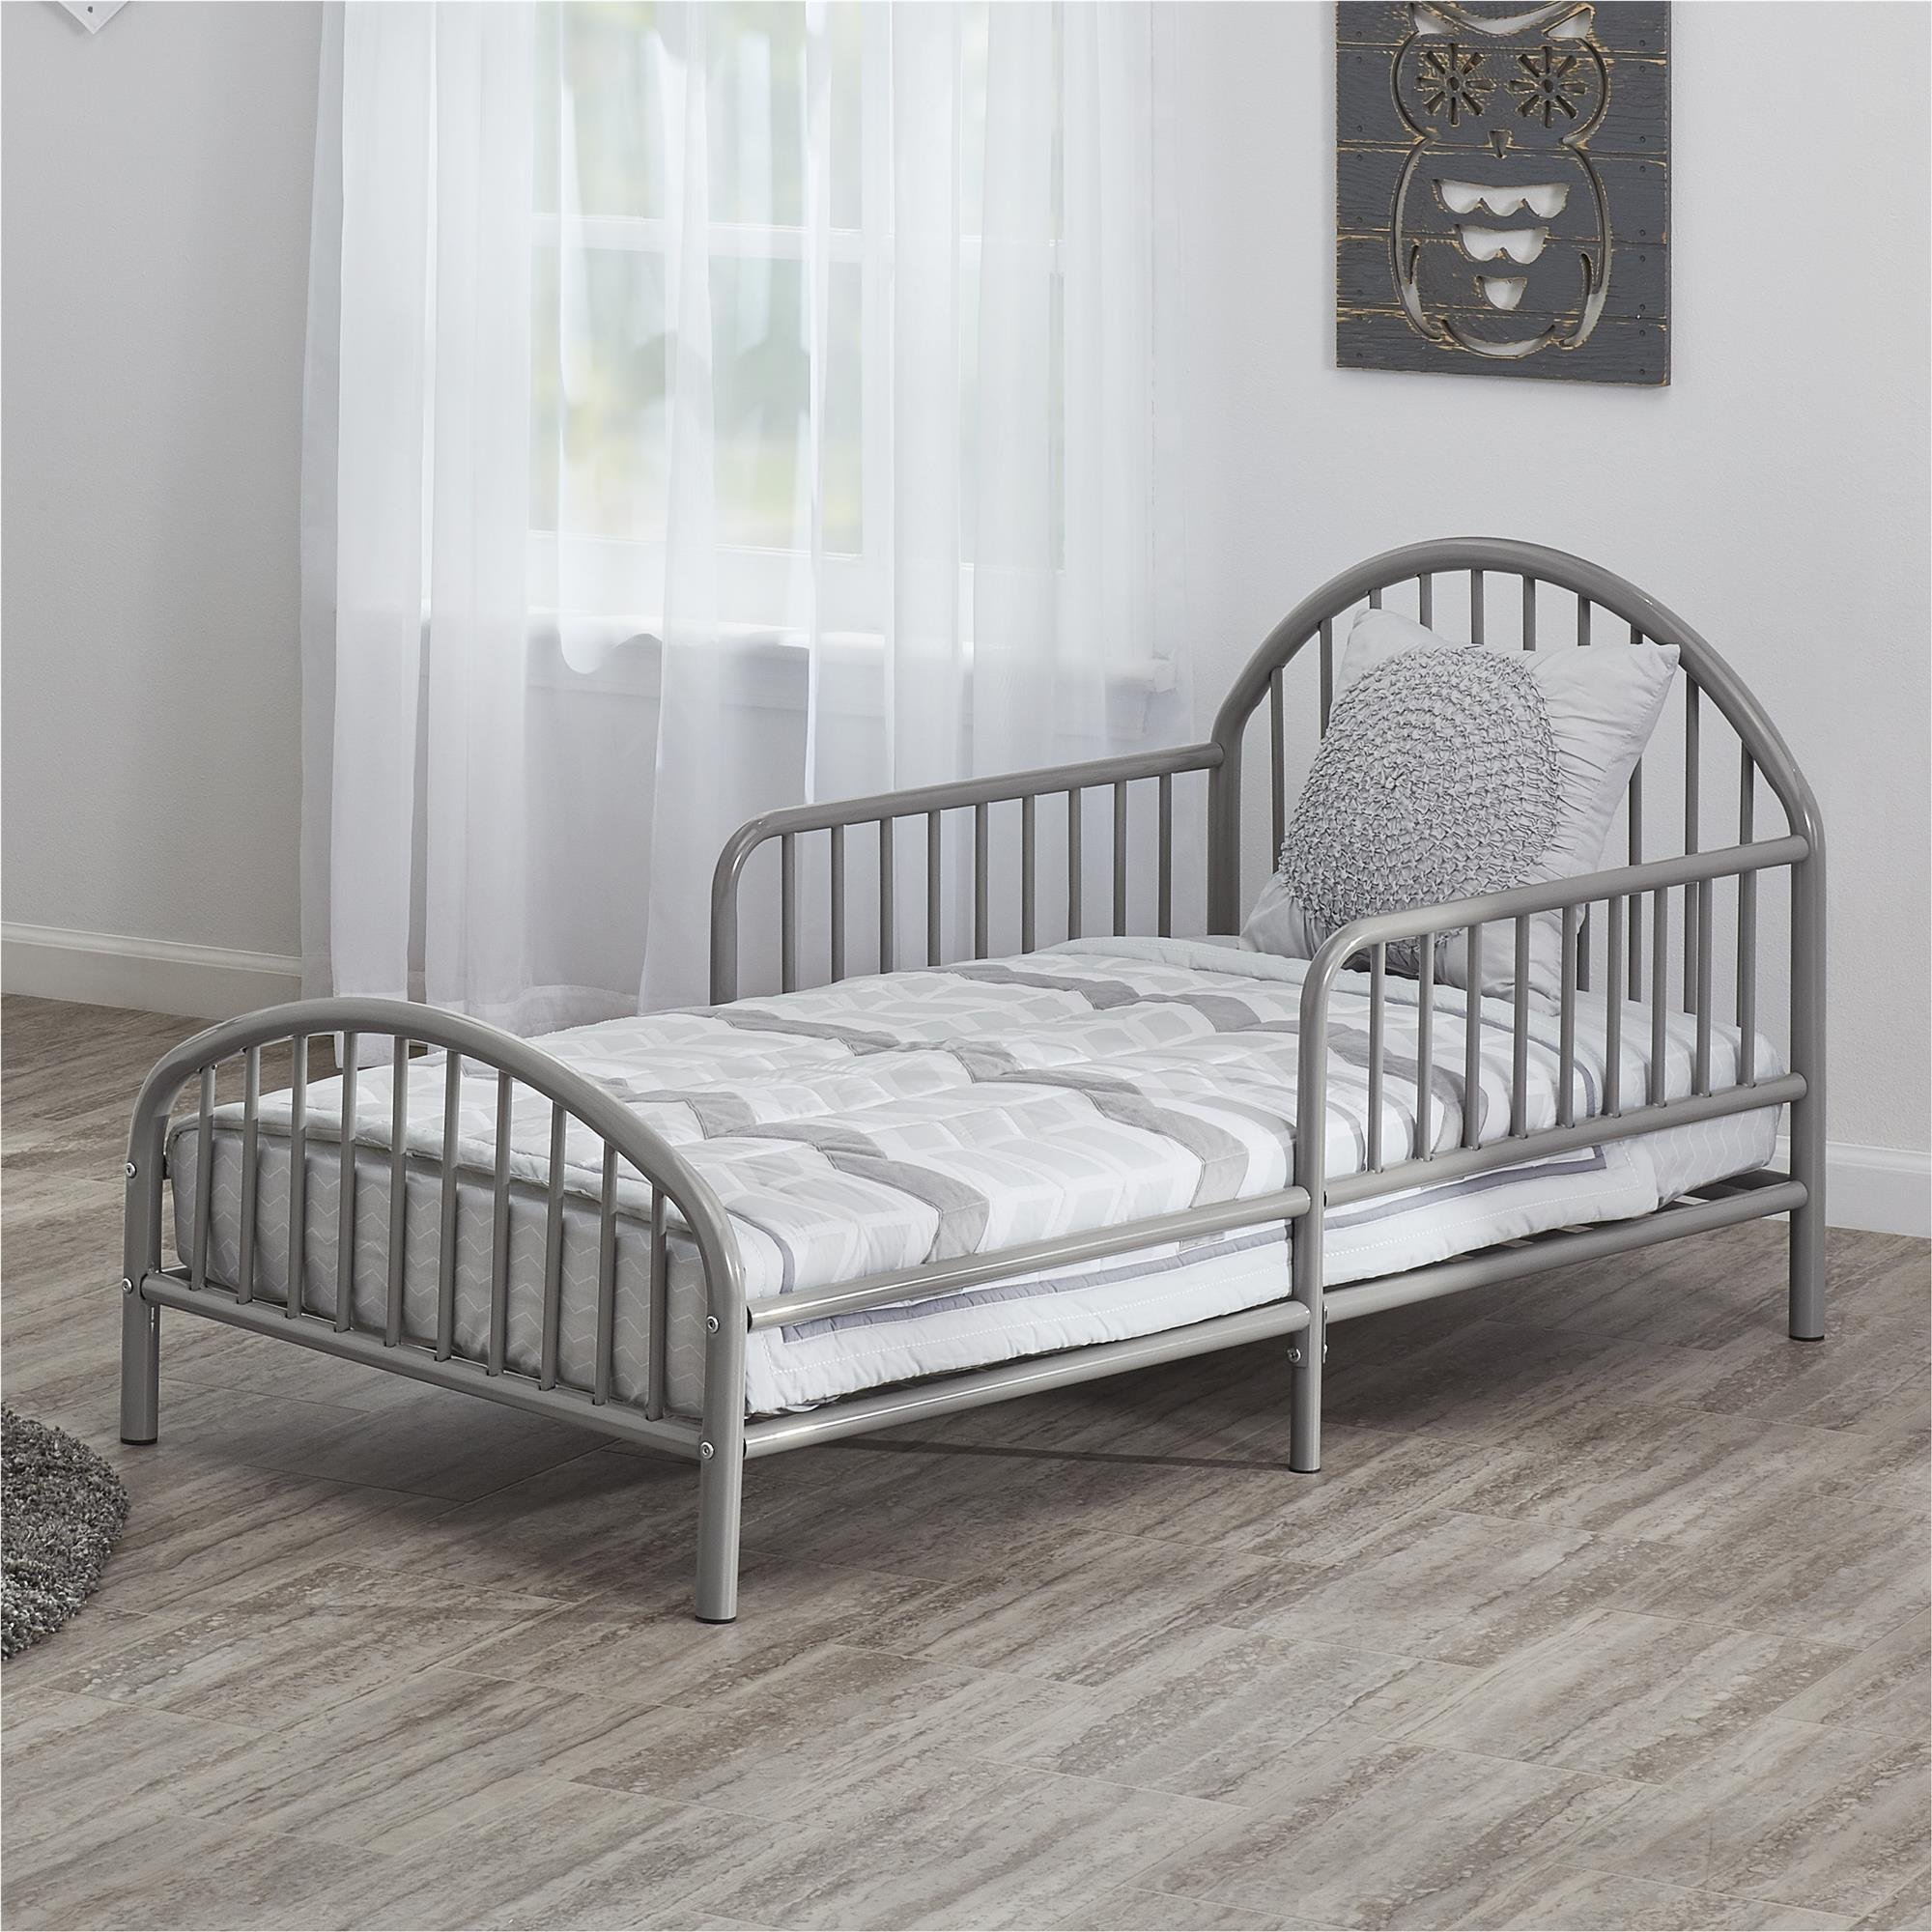 Novogratz Prism Metal Toddler Bed, Grey by Novogratz